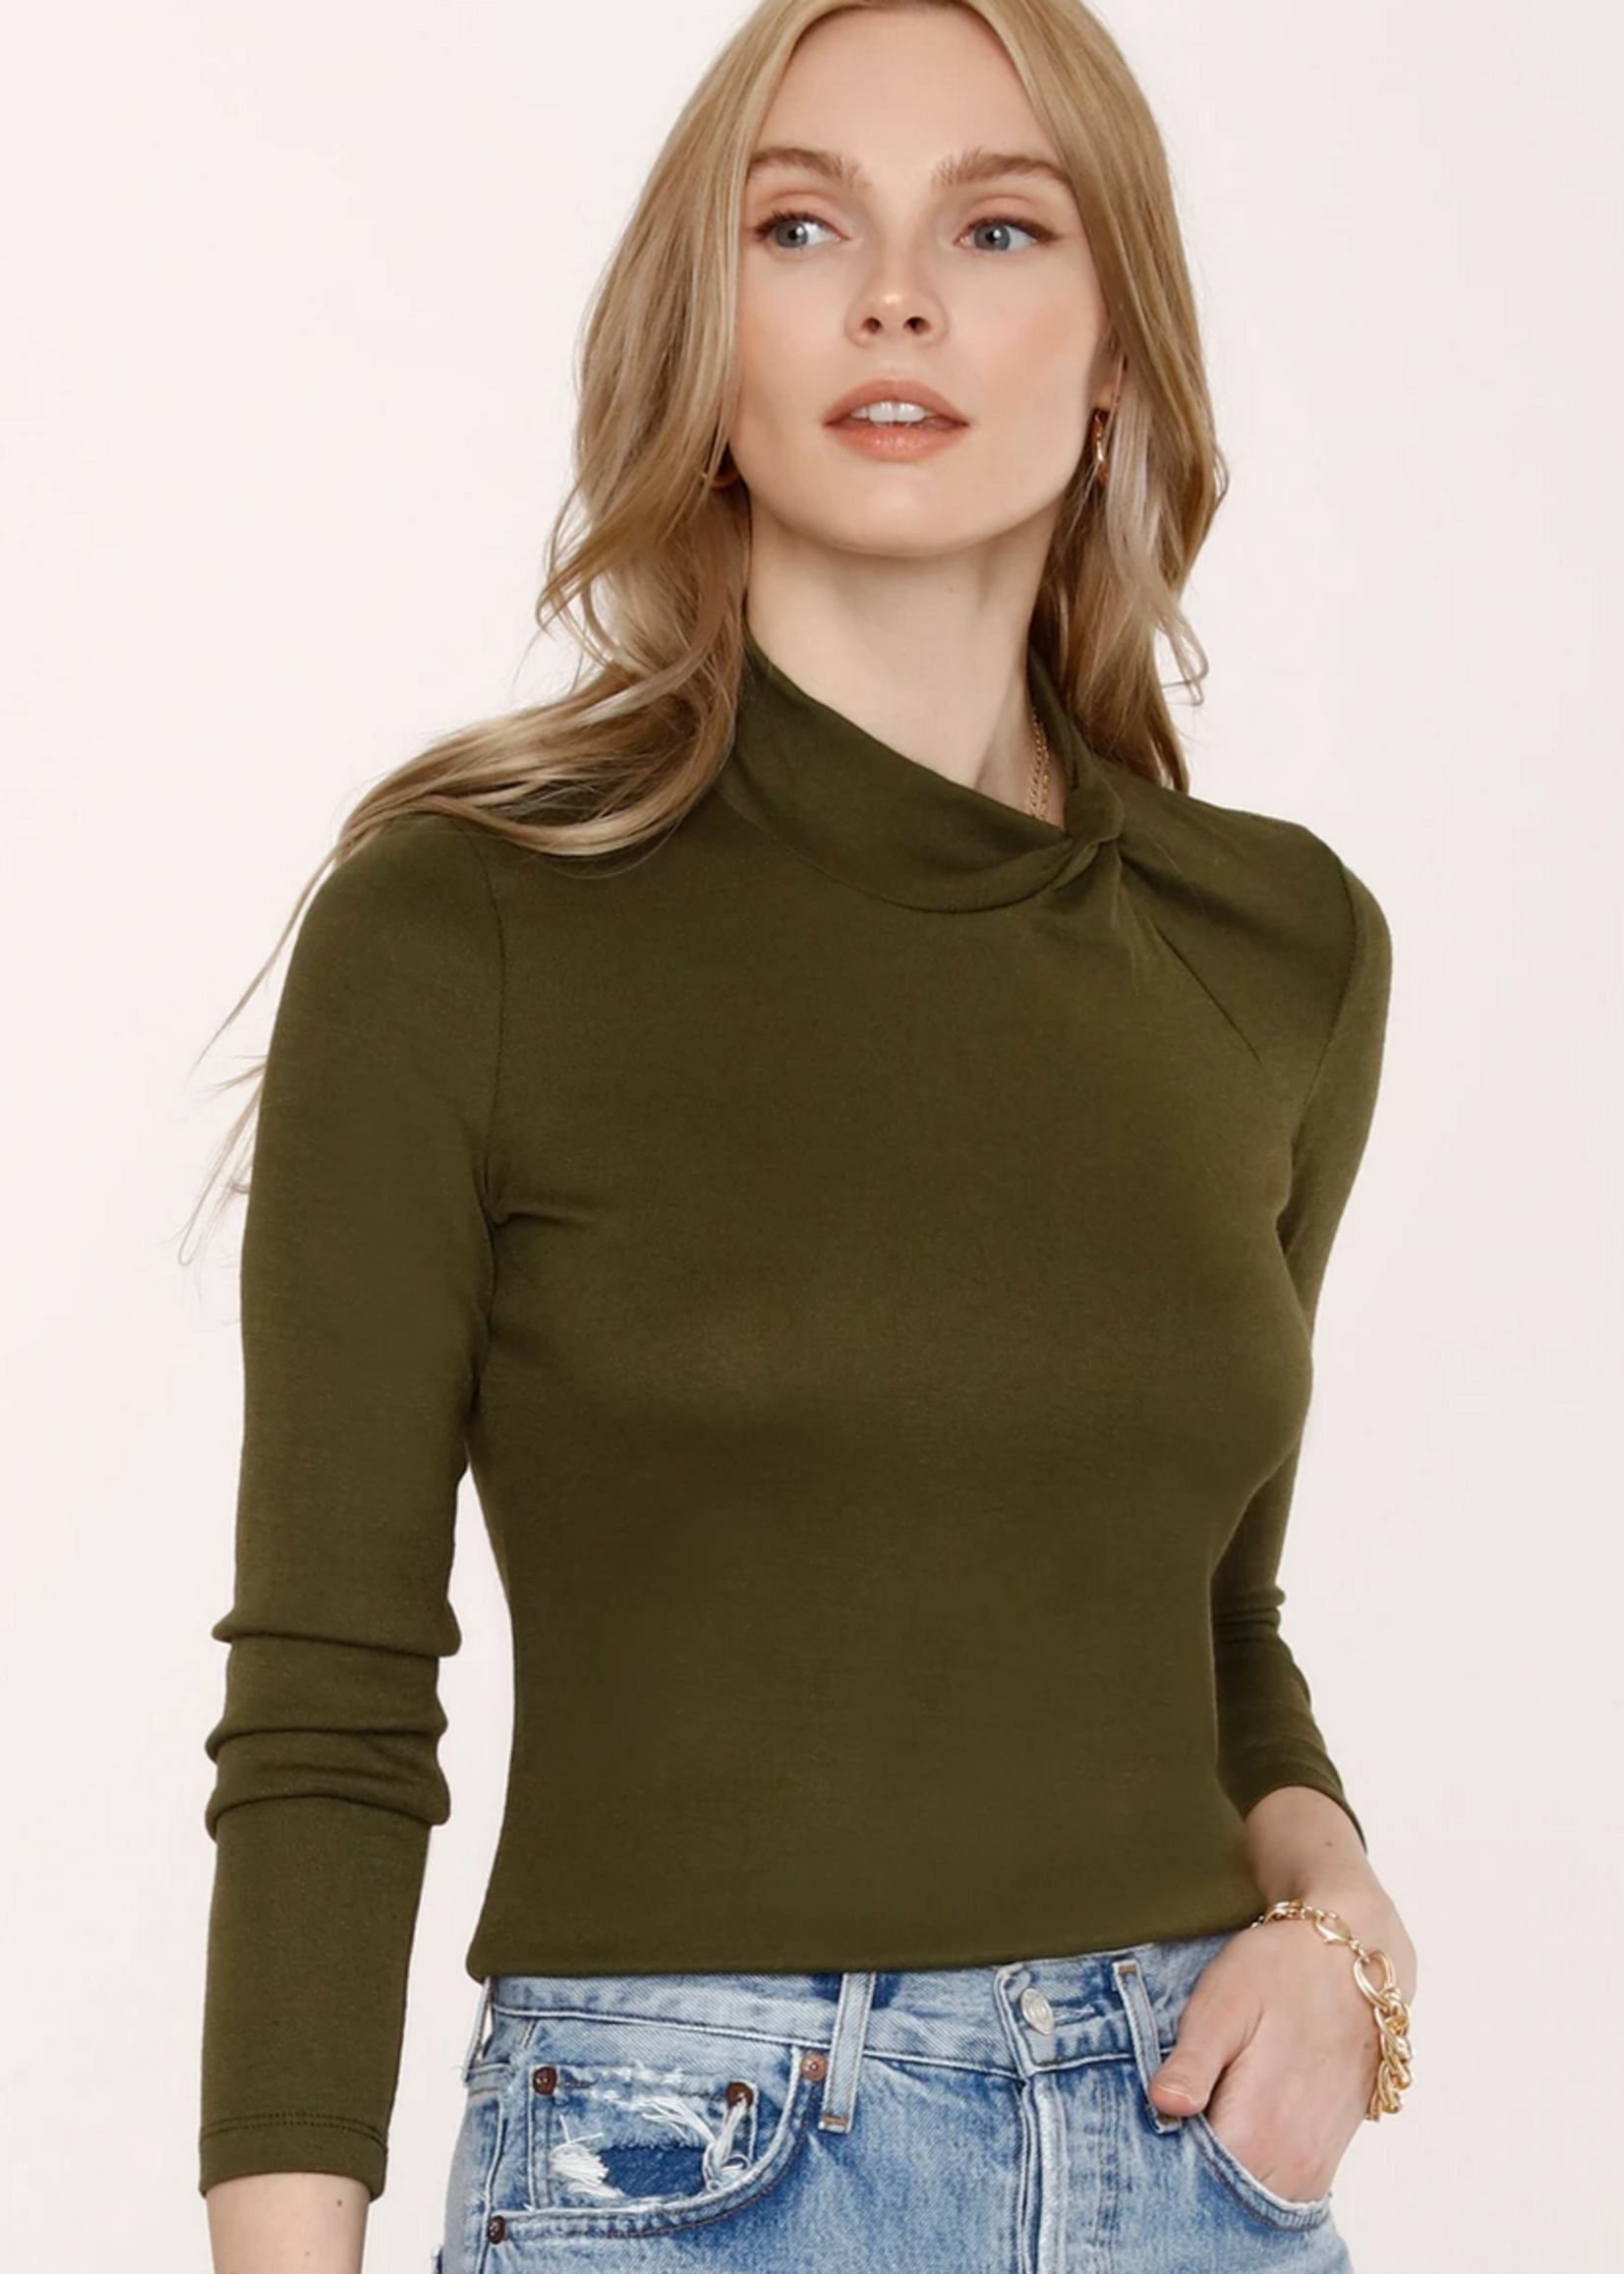 Elitaire Boutique Colette Top in Army